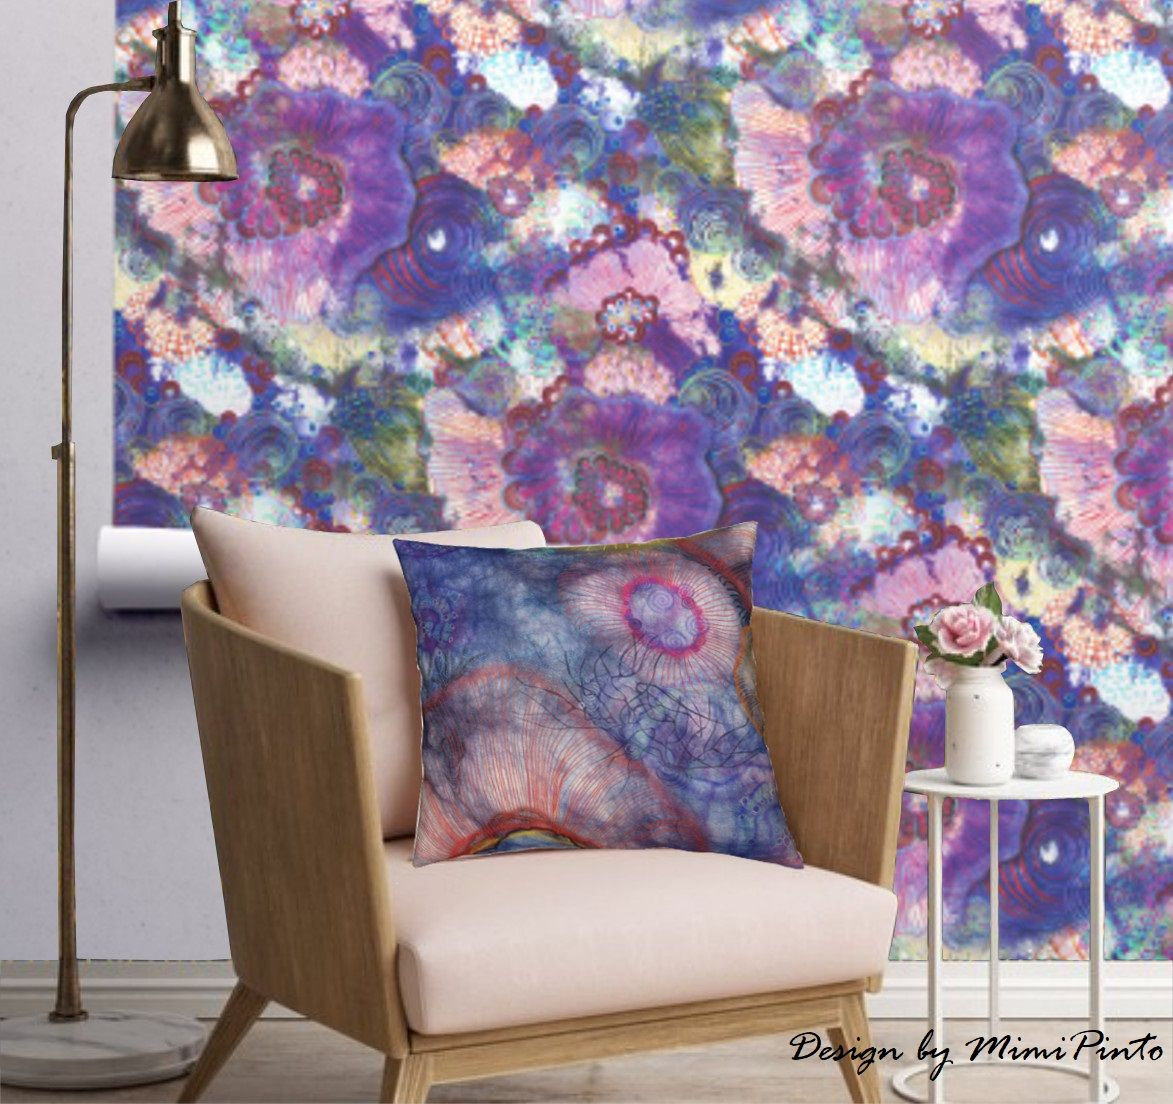 Chic Contemporary Modern Wallpaper Modern Contemporary With A Hint Of Whimsical Contemporary Chic